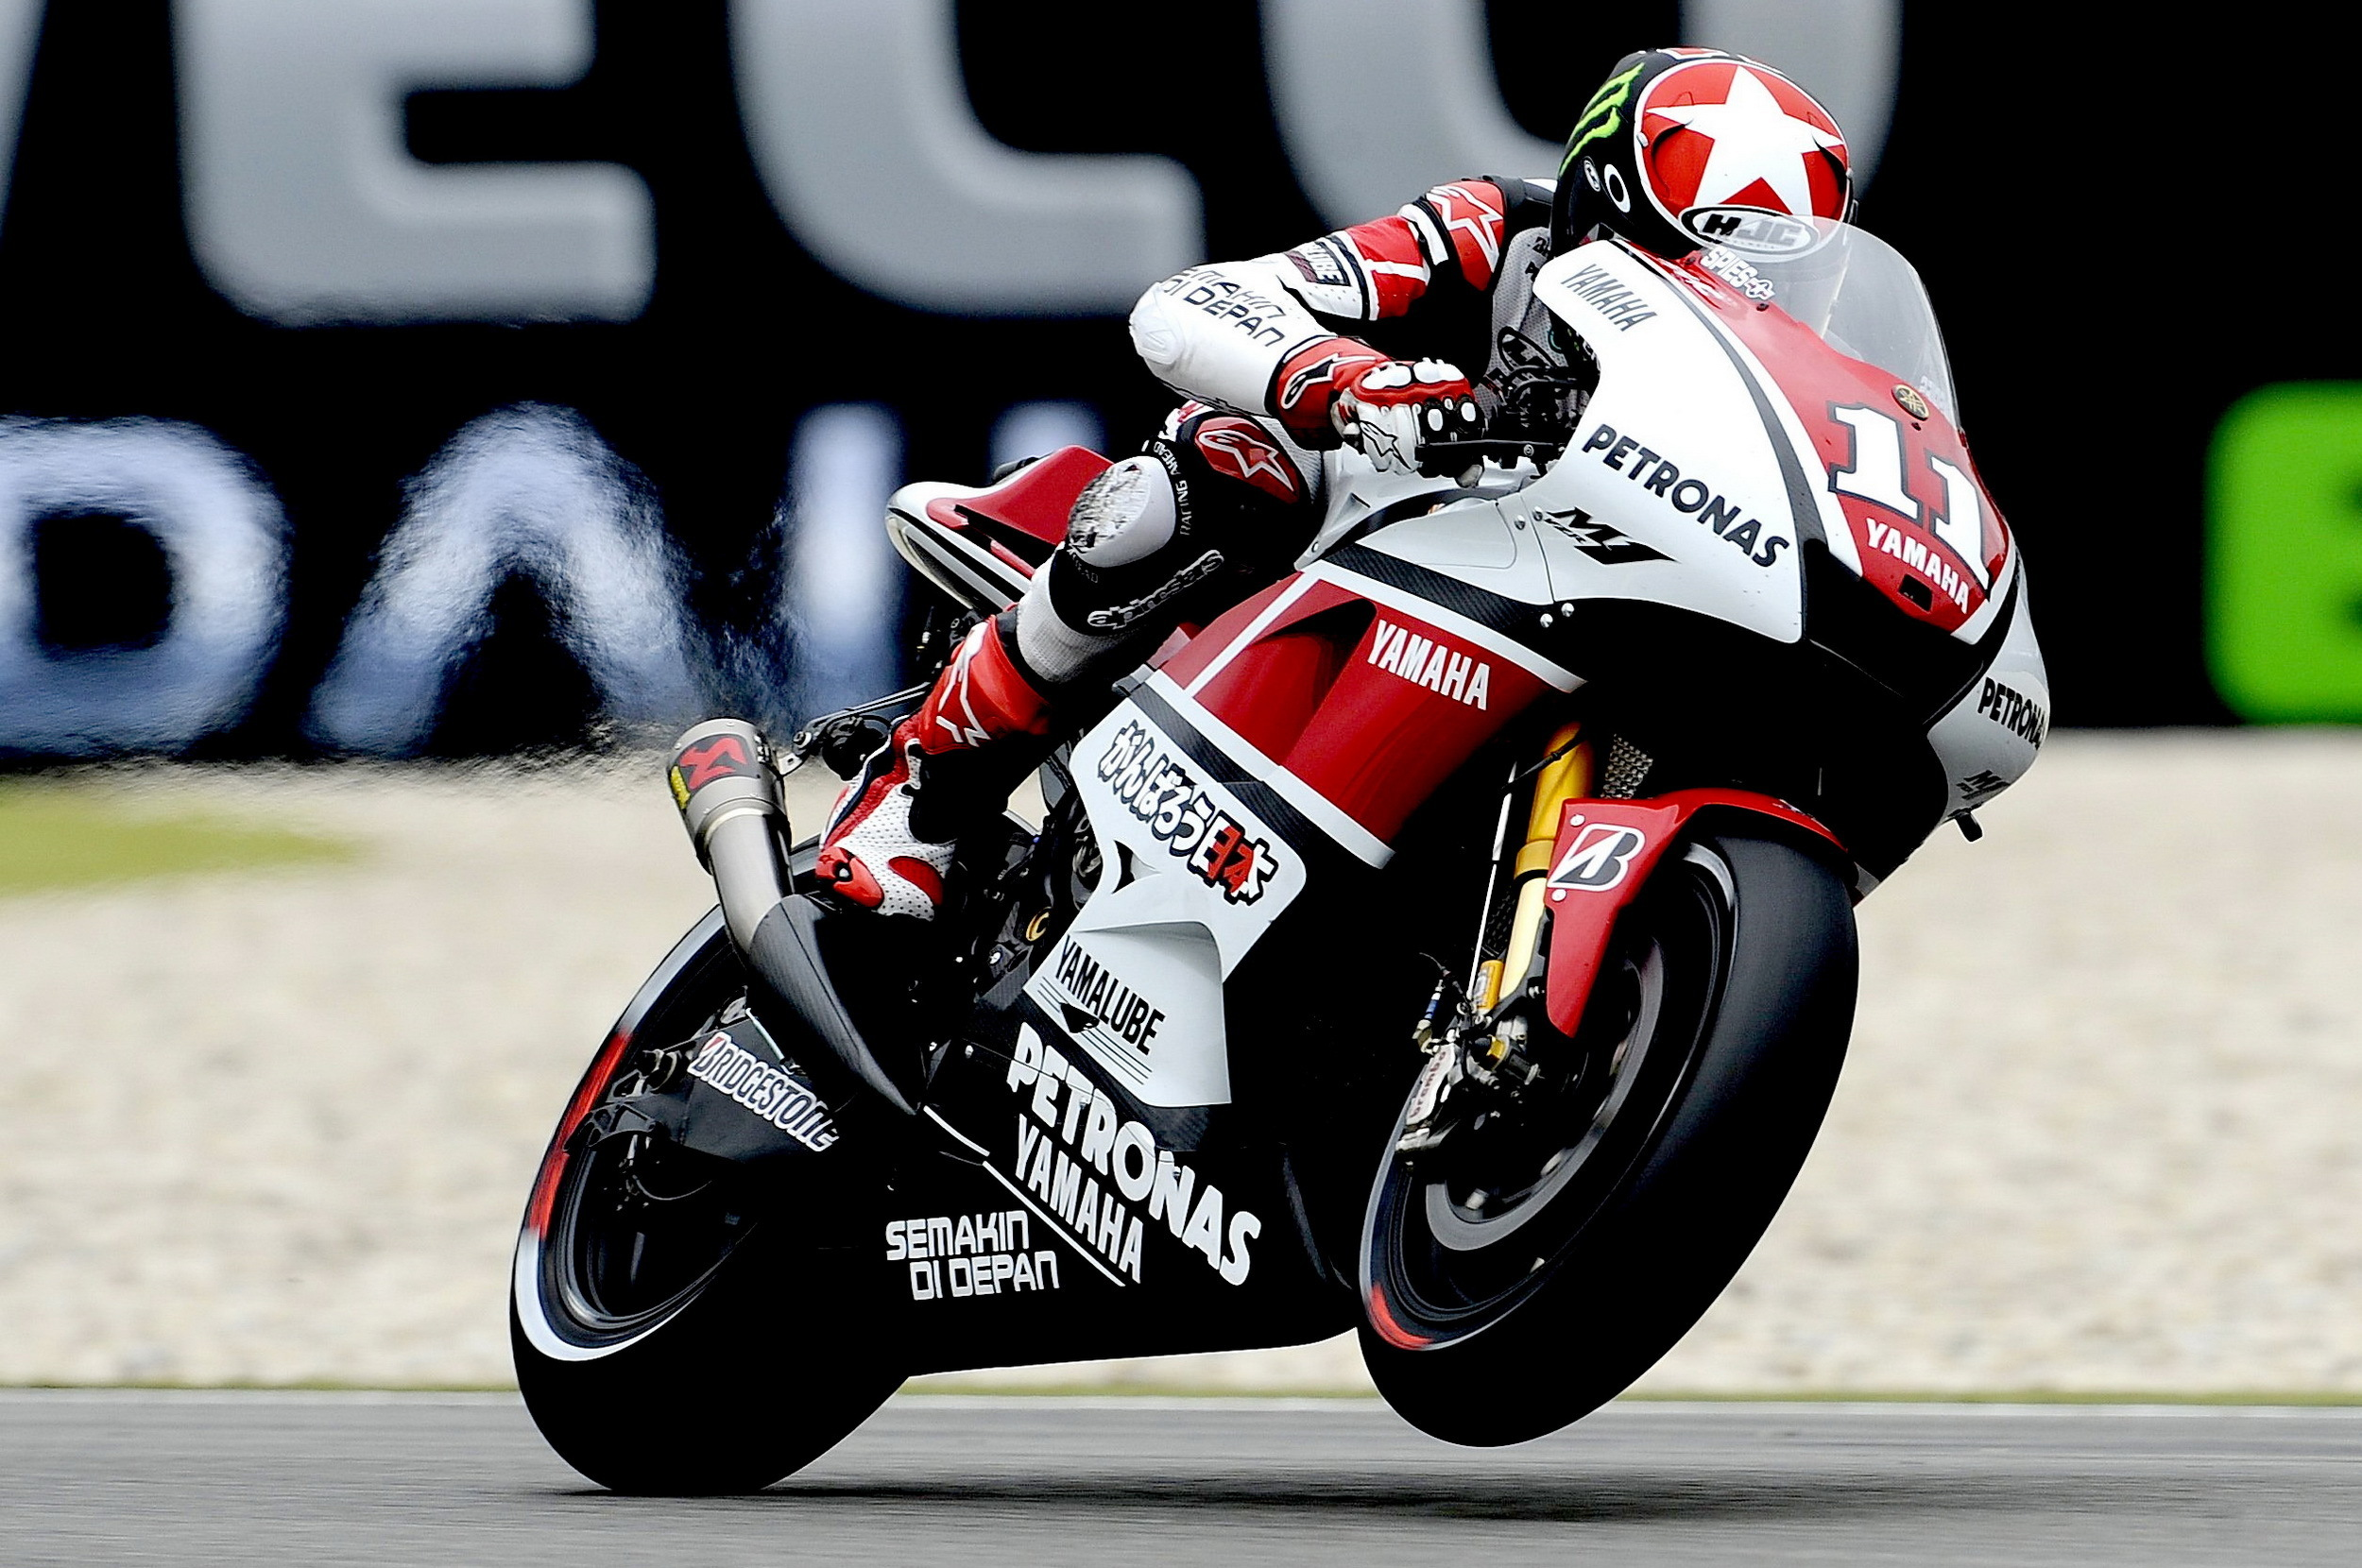 Motorcycle Racing Full HD Wallpaper And Background Image